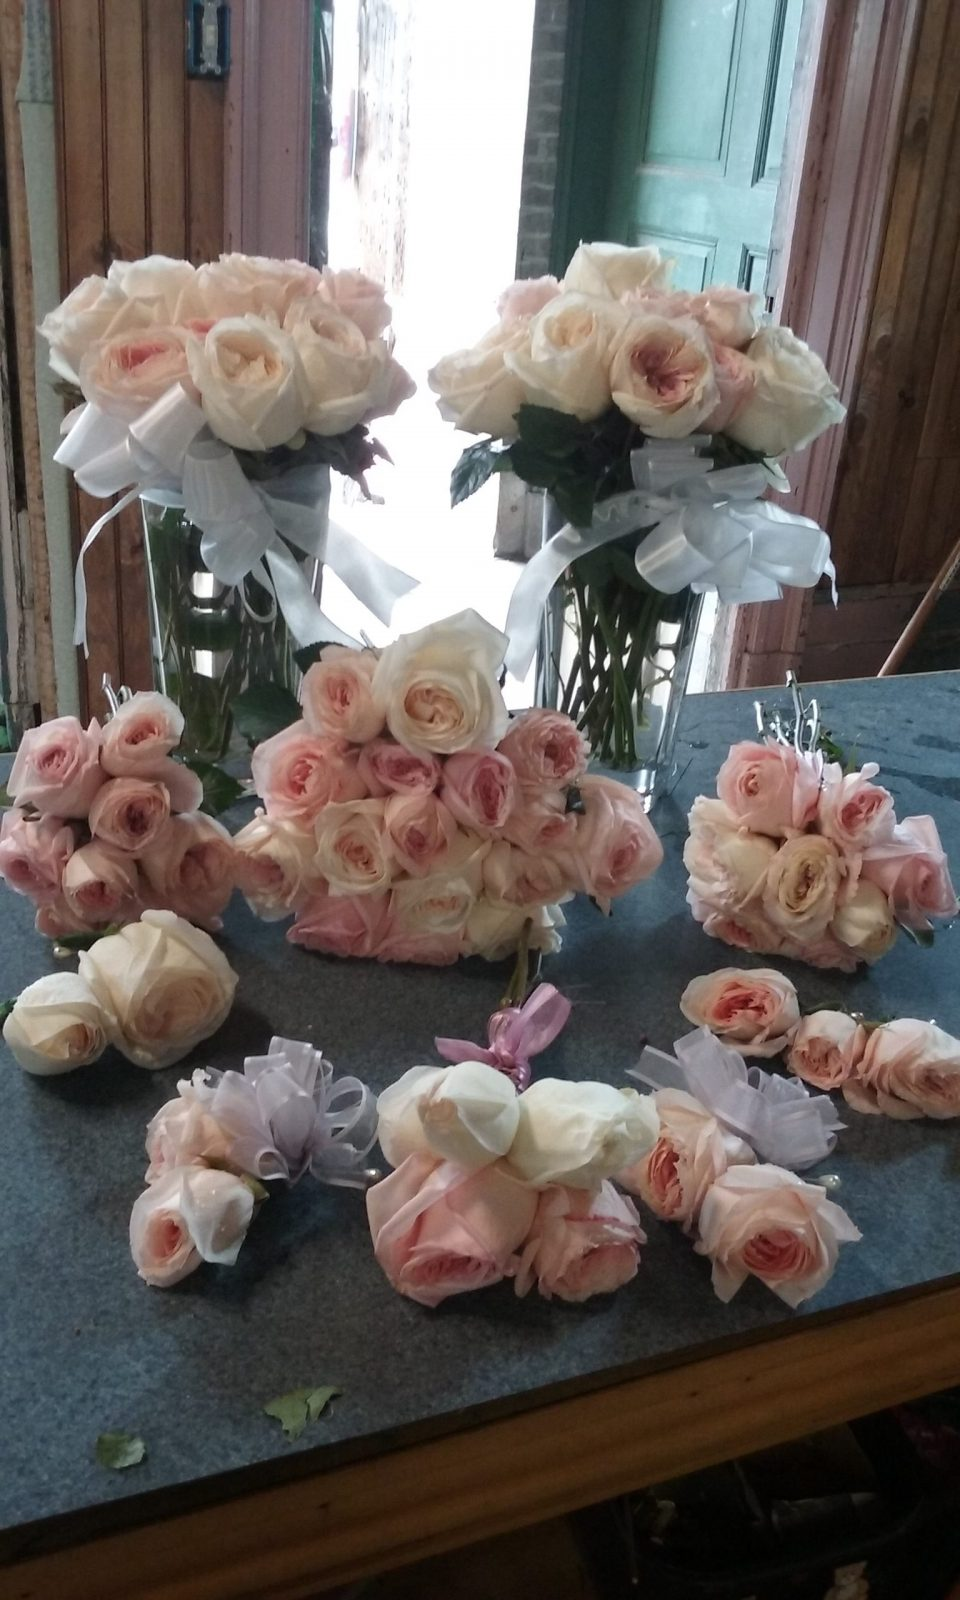 all-pale-pink-roses-bridal-bouquet-and-vases